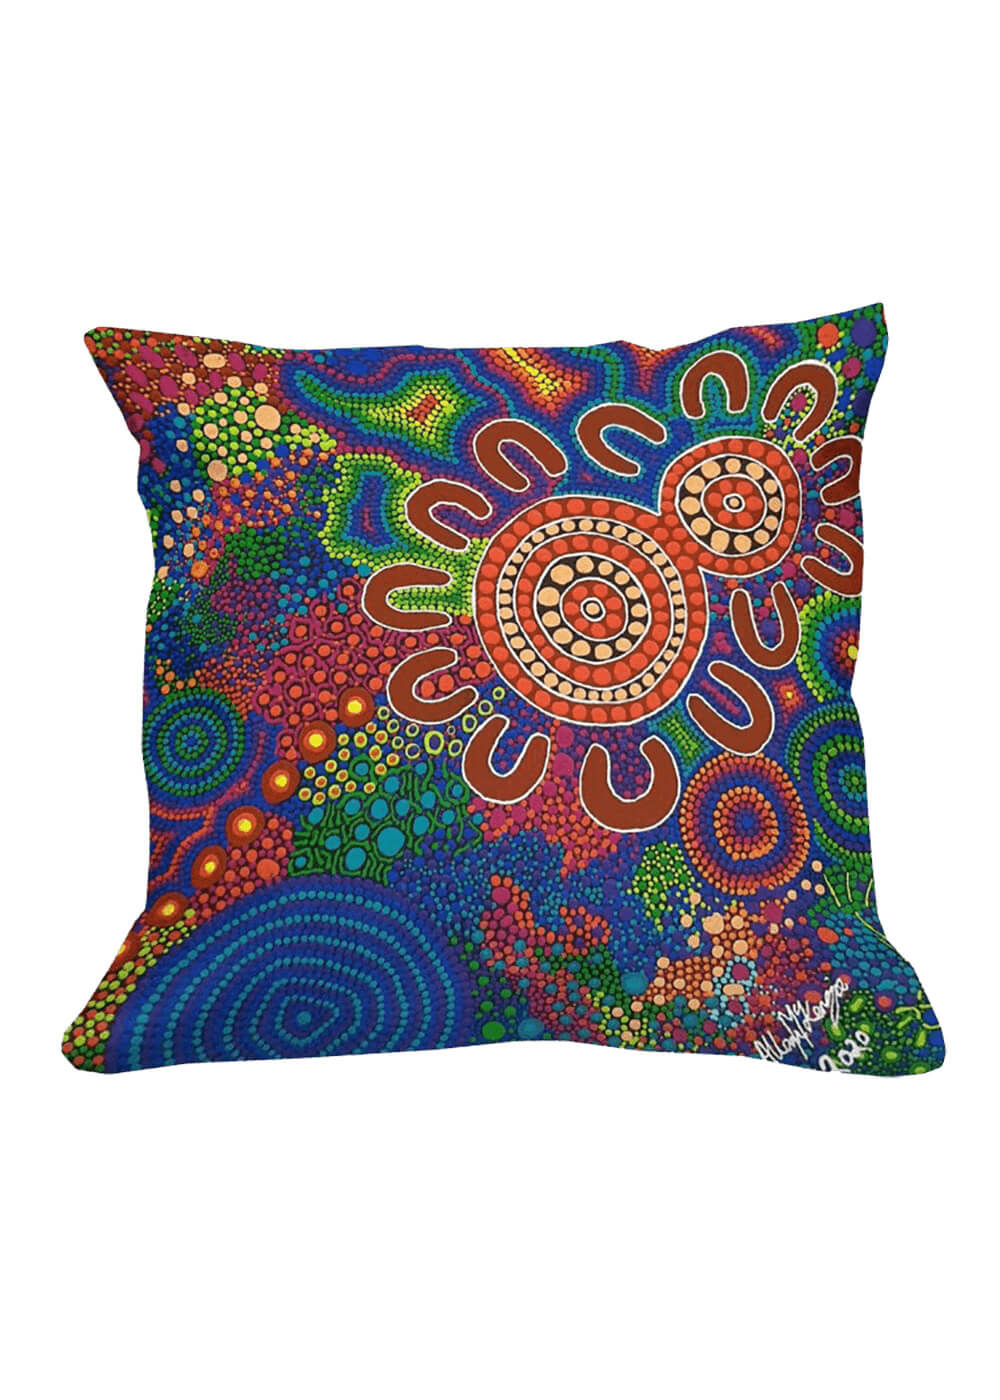 The Journey - Cushion Cover